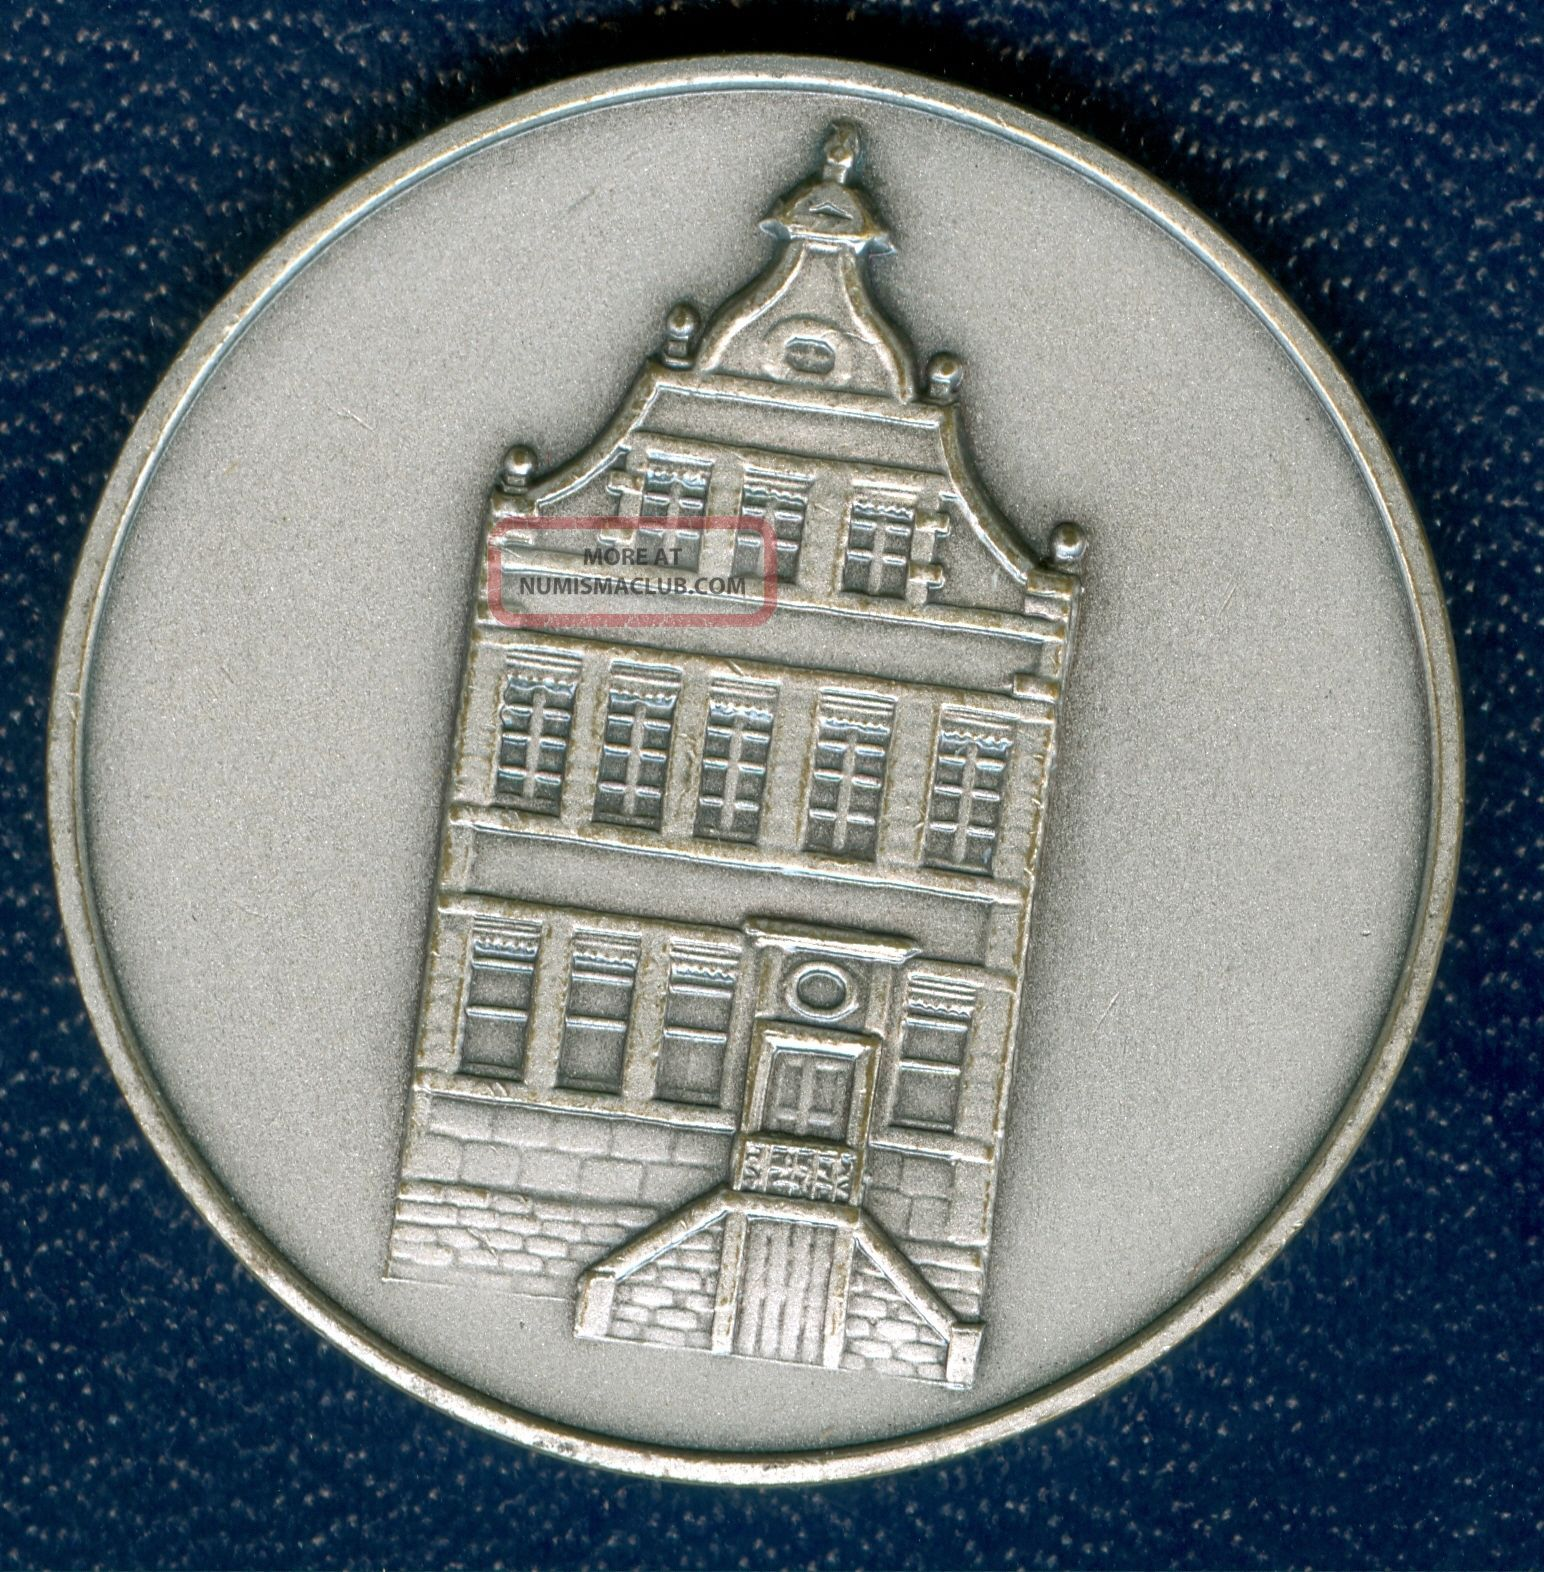 1974 Belgium Medal In Honor Of The Municipality Of Eupen,  In Silvered Bronze Exonumia photo